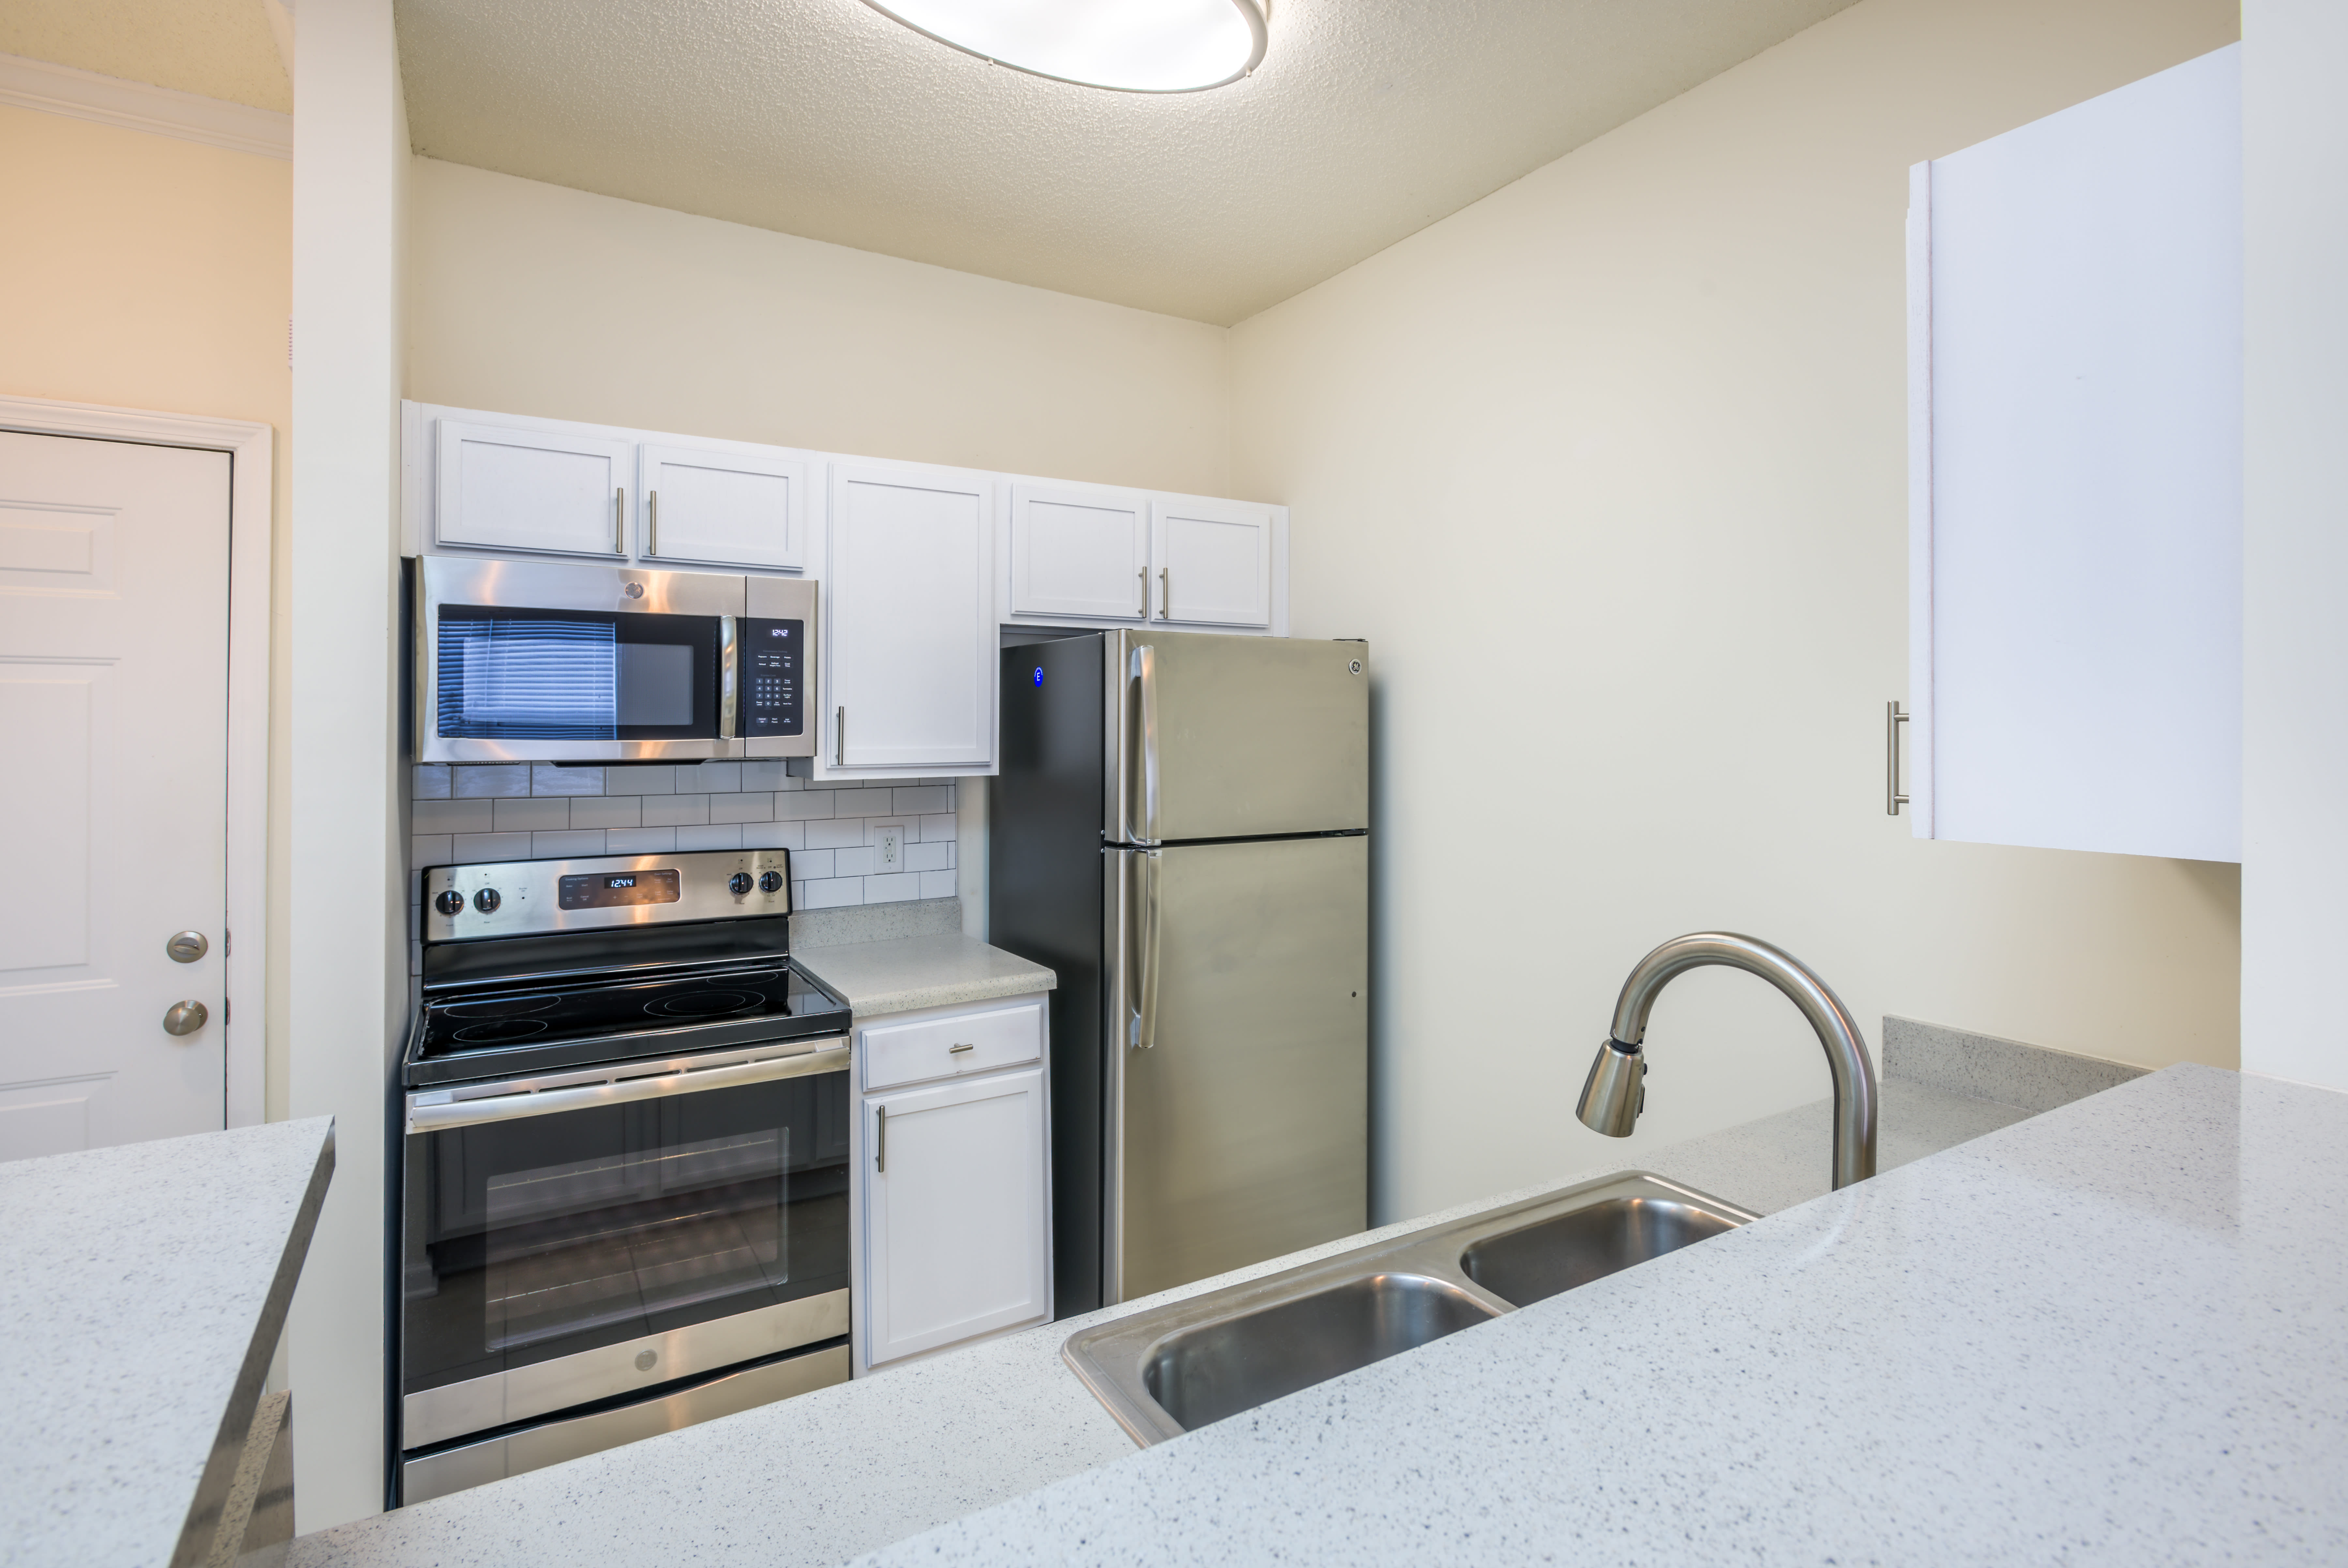 View virtual tour for 1 bedroom 1 bathroom unit at The Avant at Steele Creek in Charlotte, North Carolina